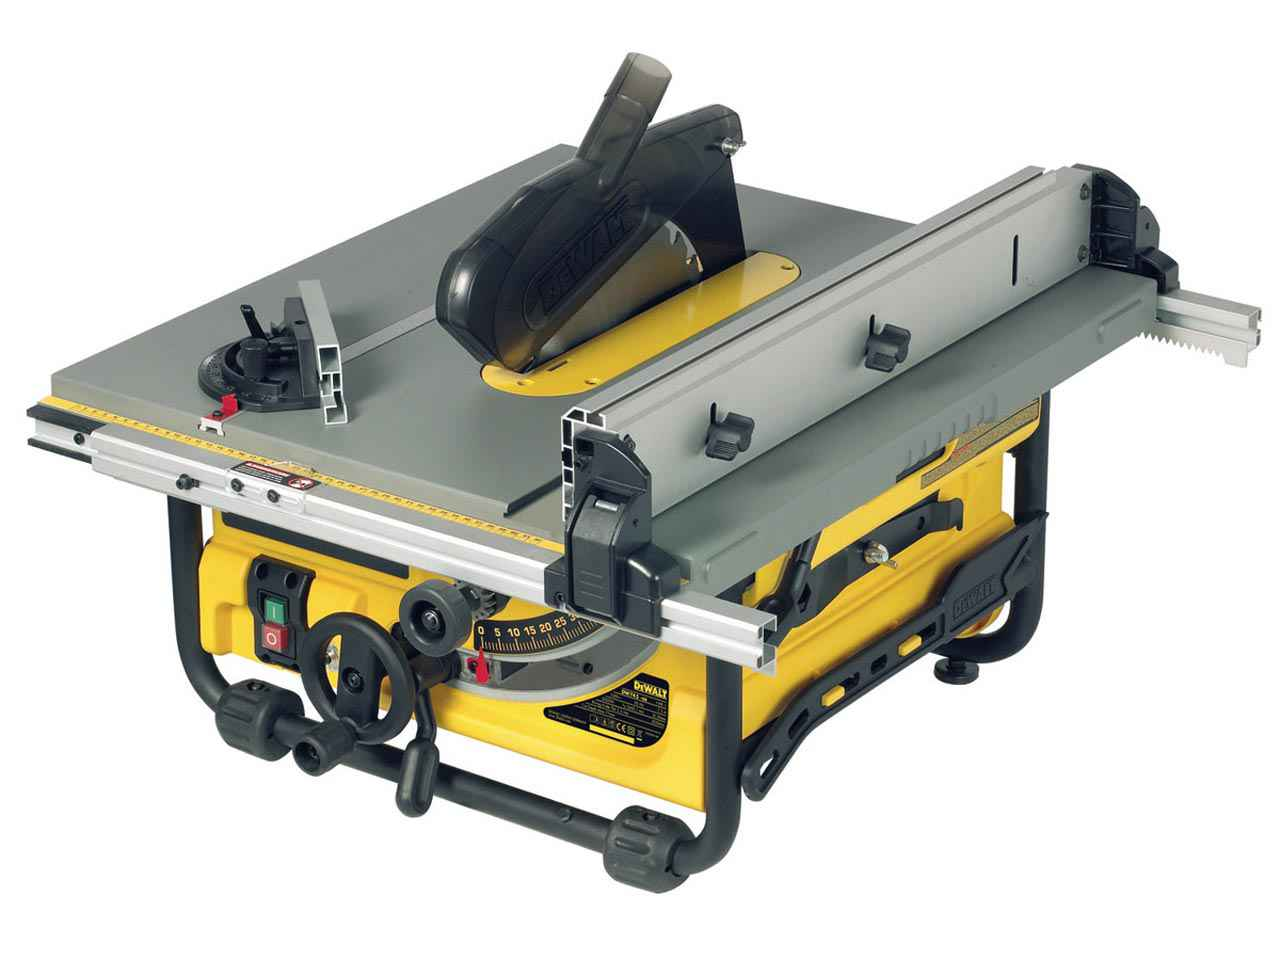 Dewalt dw745 230v portable site table saw greentooth Image collections